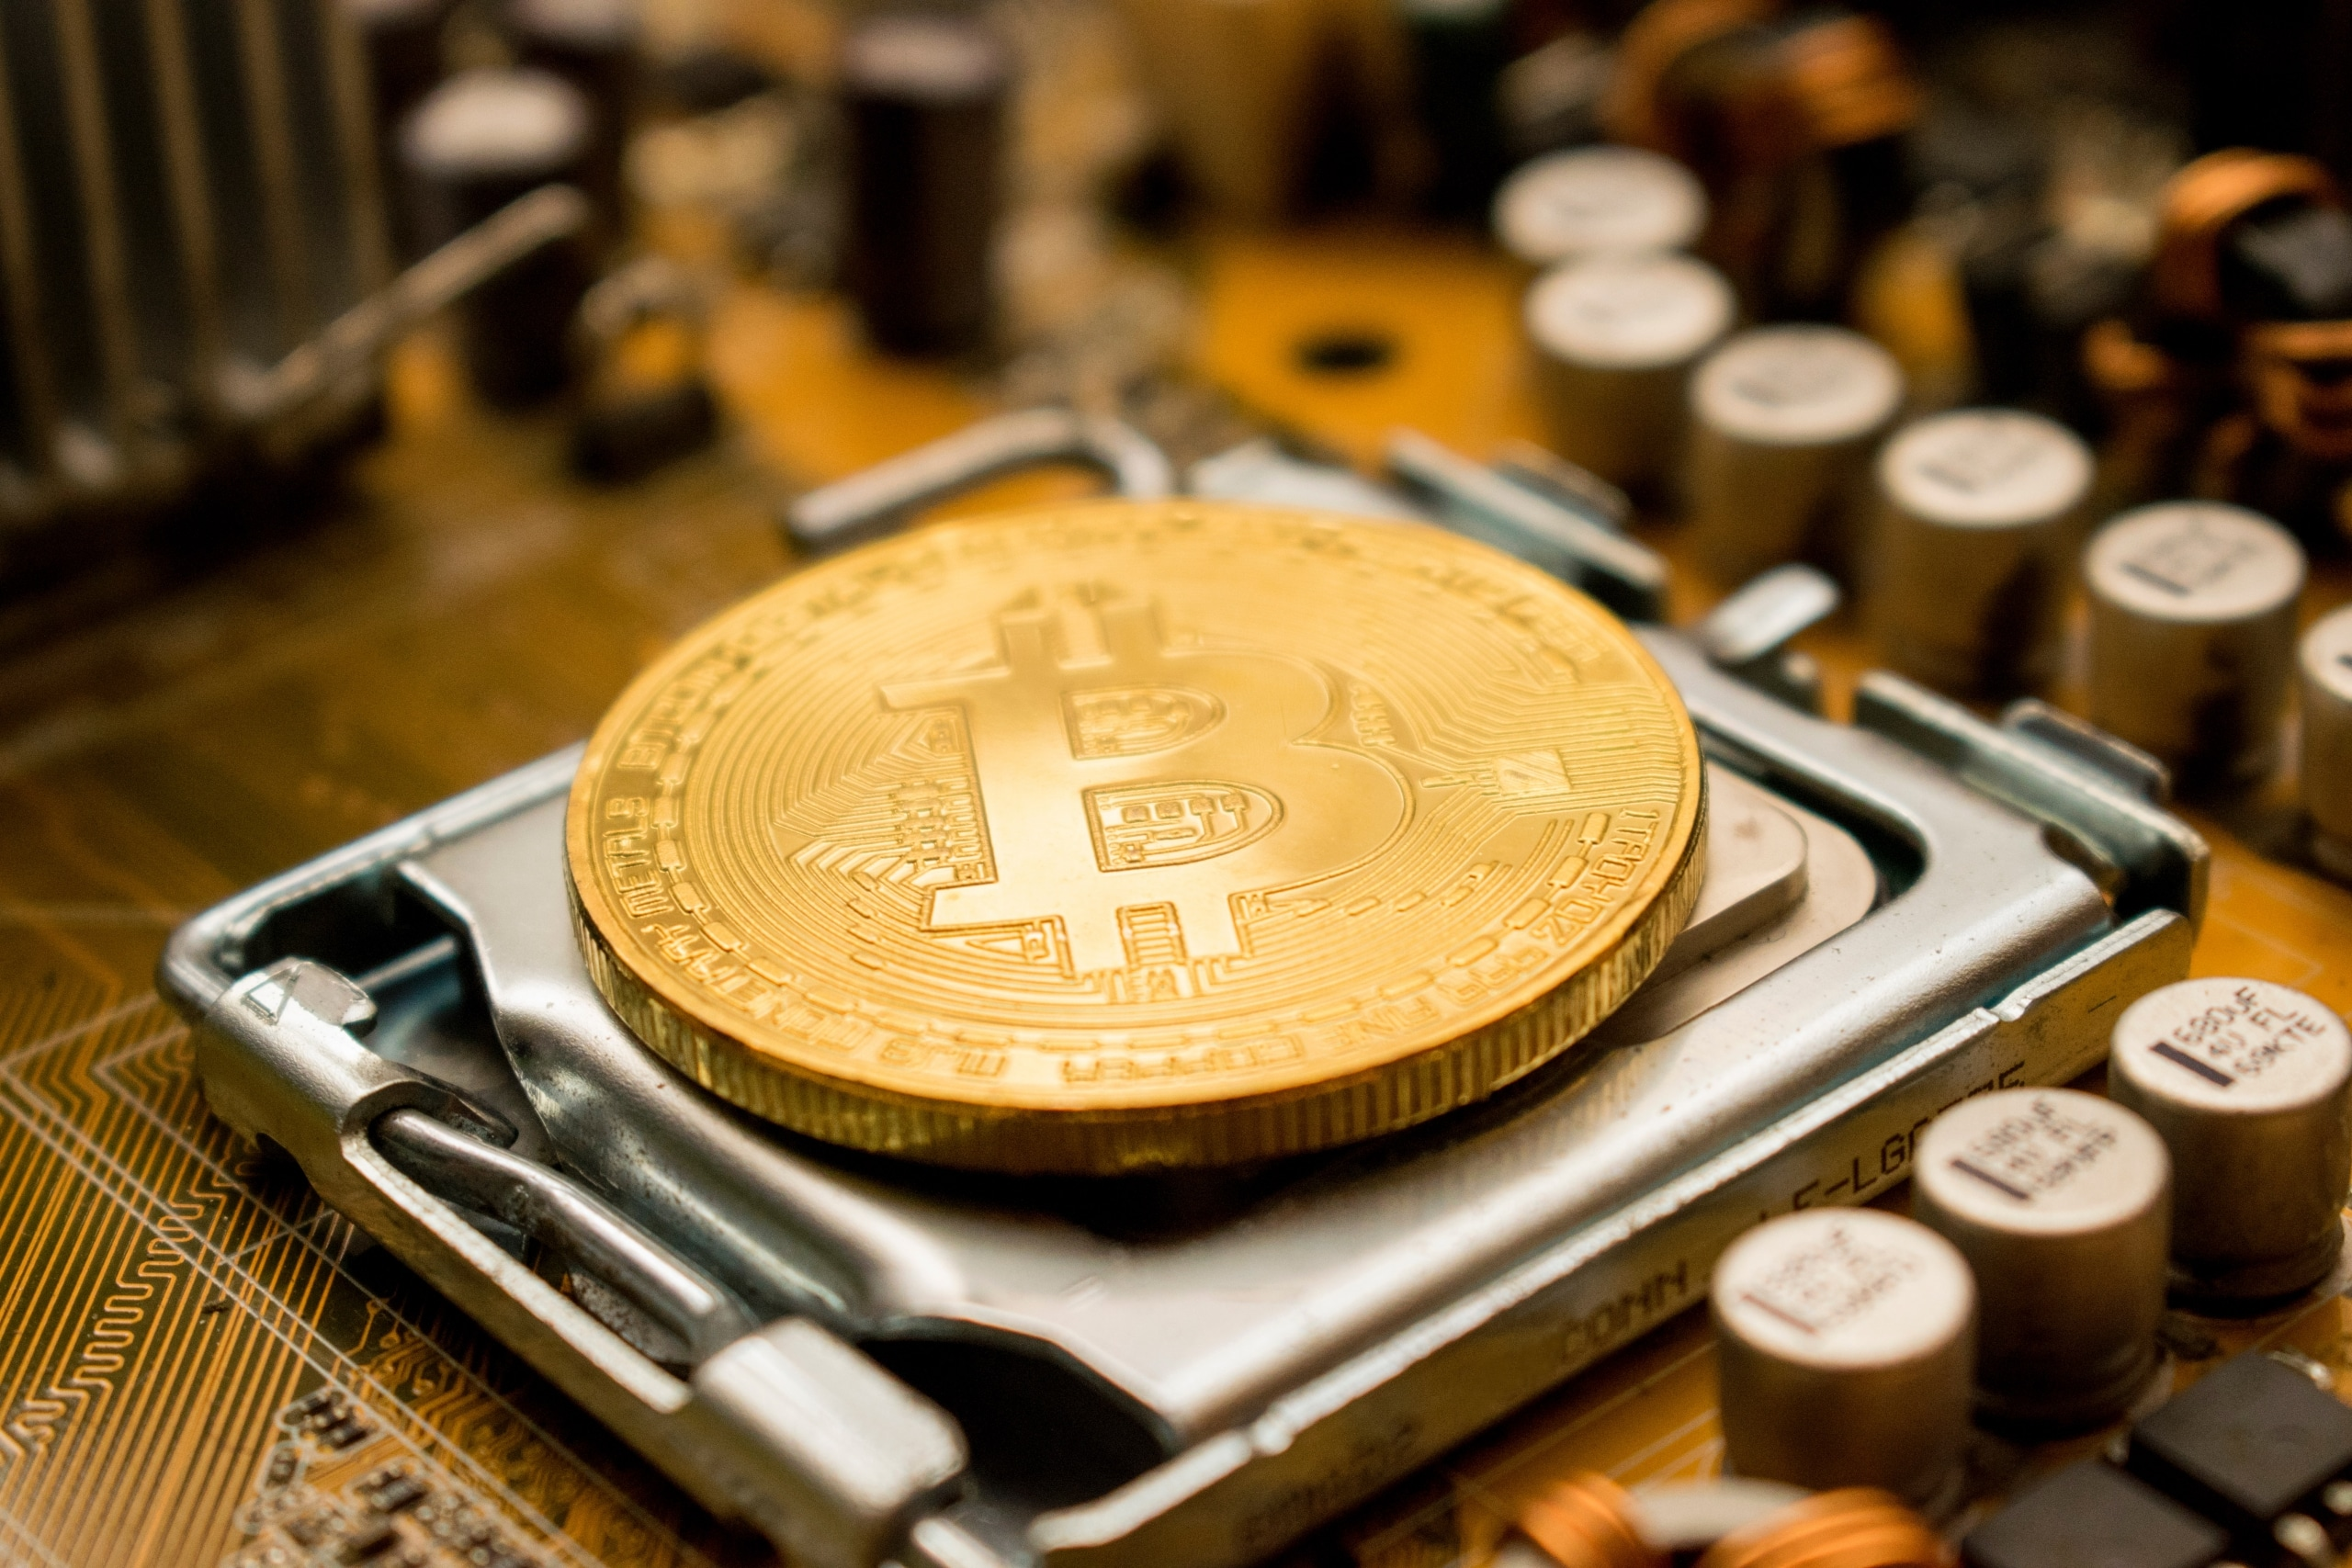 Role of Bitcoin in the electric energy market